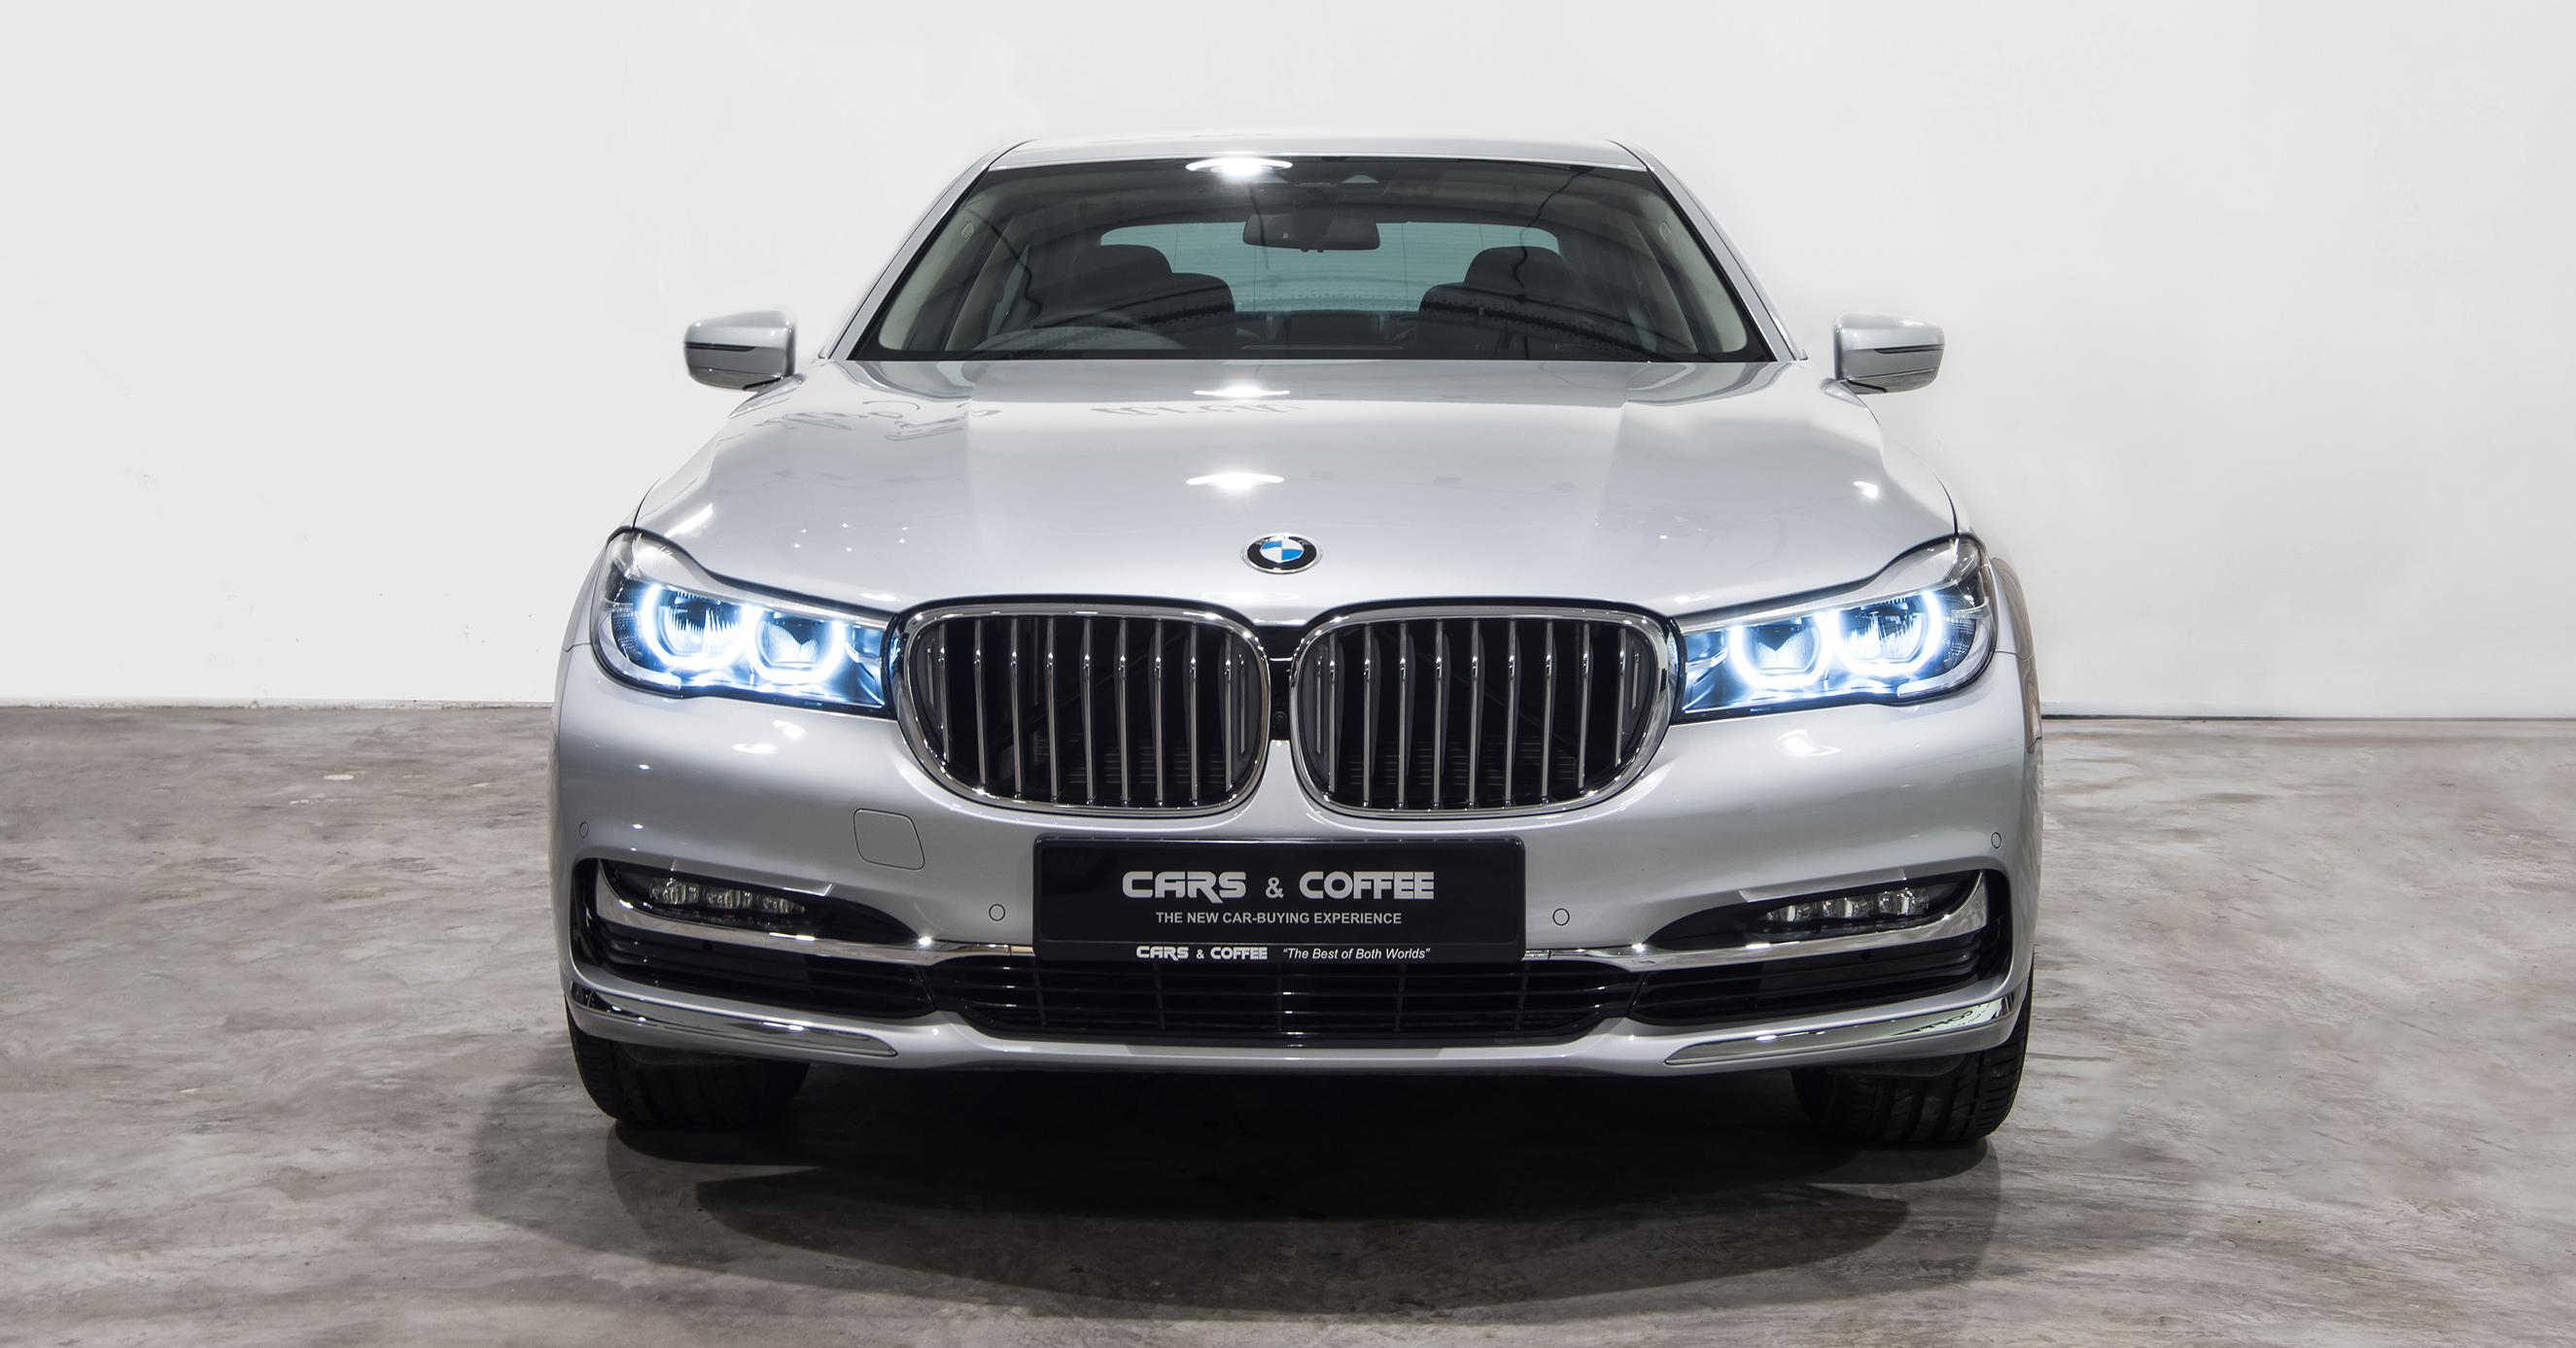 The New BMW 7 Series is more than flawless craftsmanship. It's a window into the future of luxury car design.